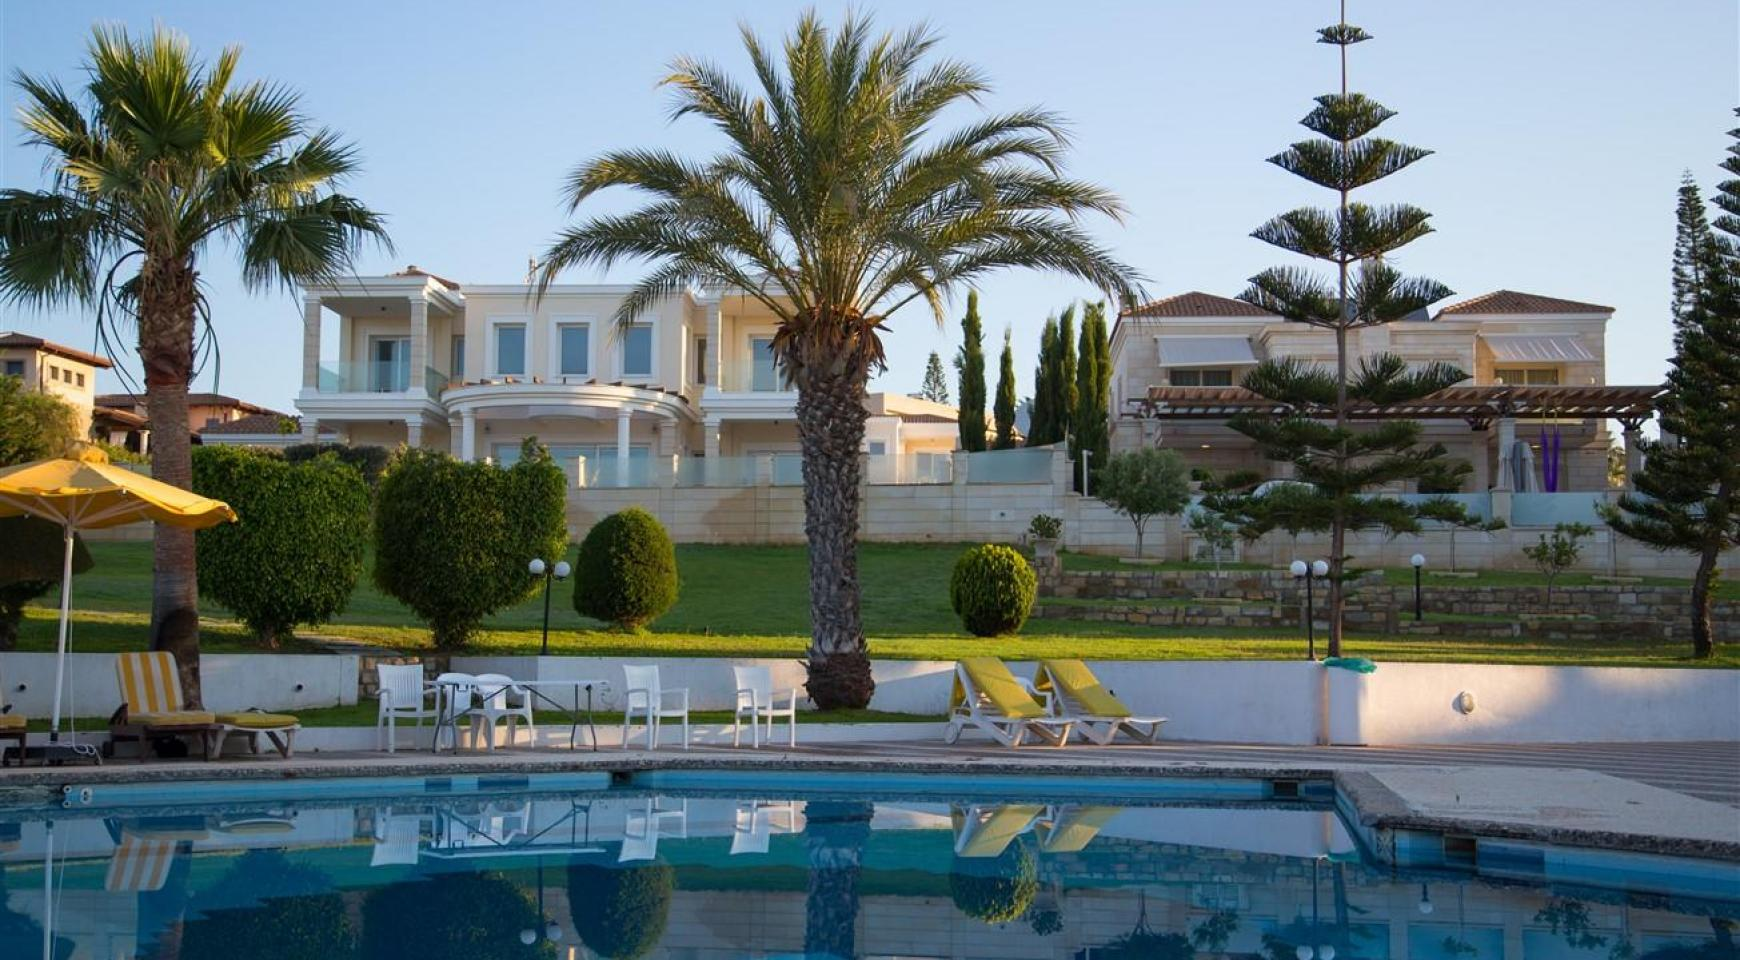 Luxury Modern 3 Bedroom Apartment in Thera Complex by the Sea - 1